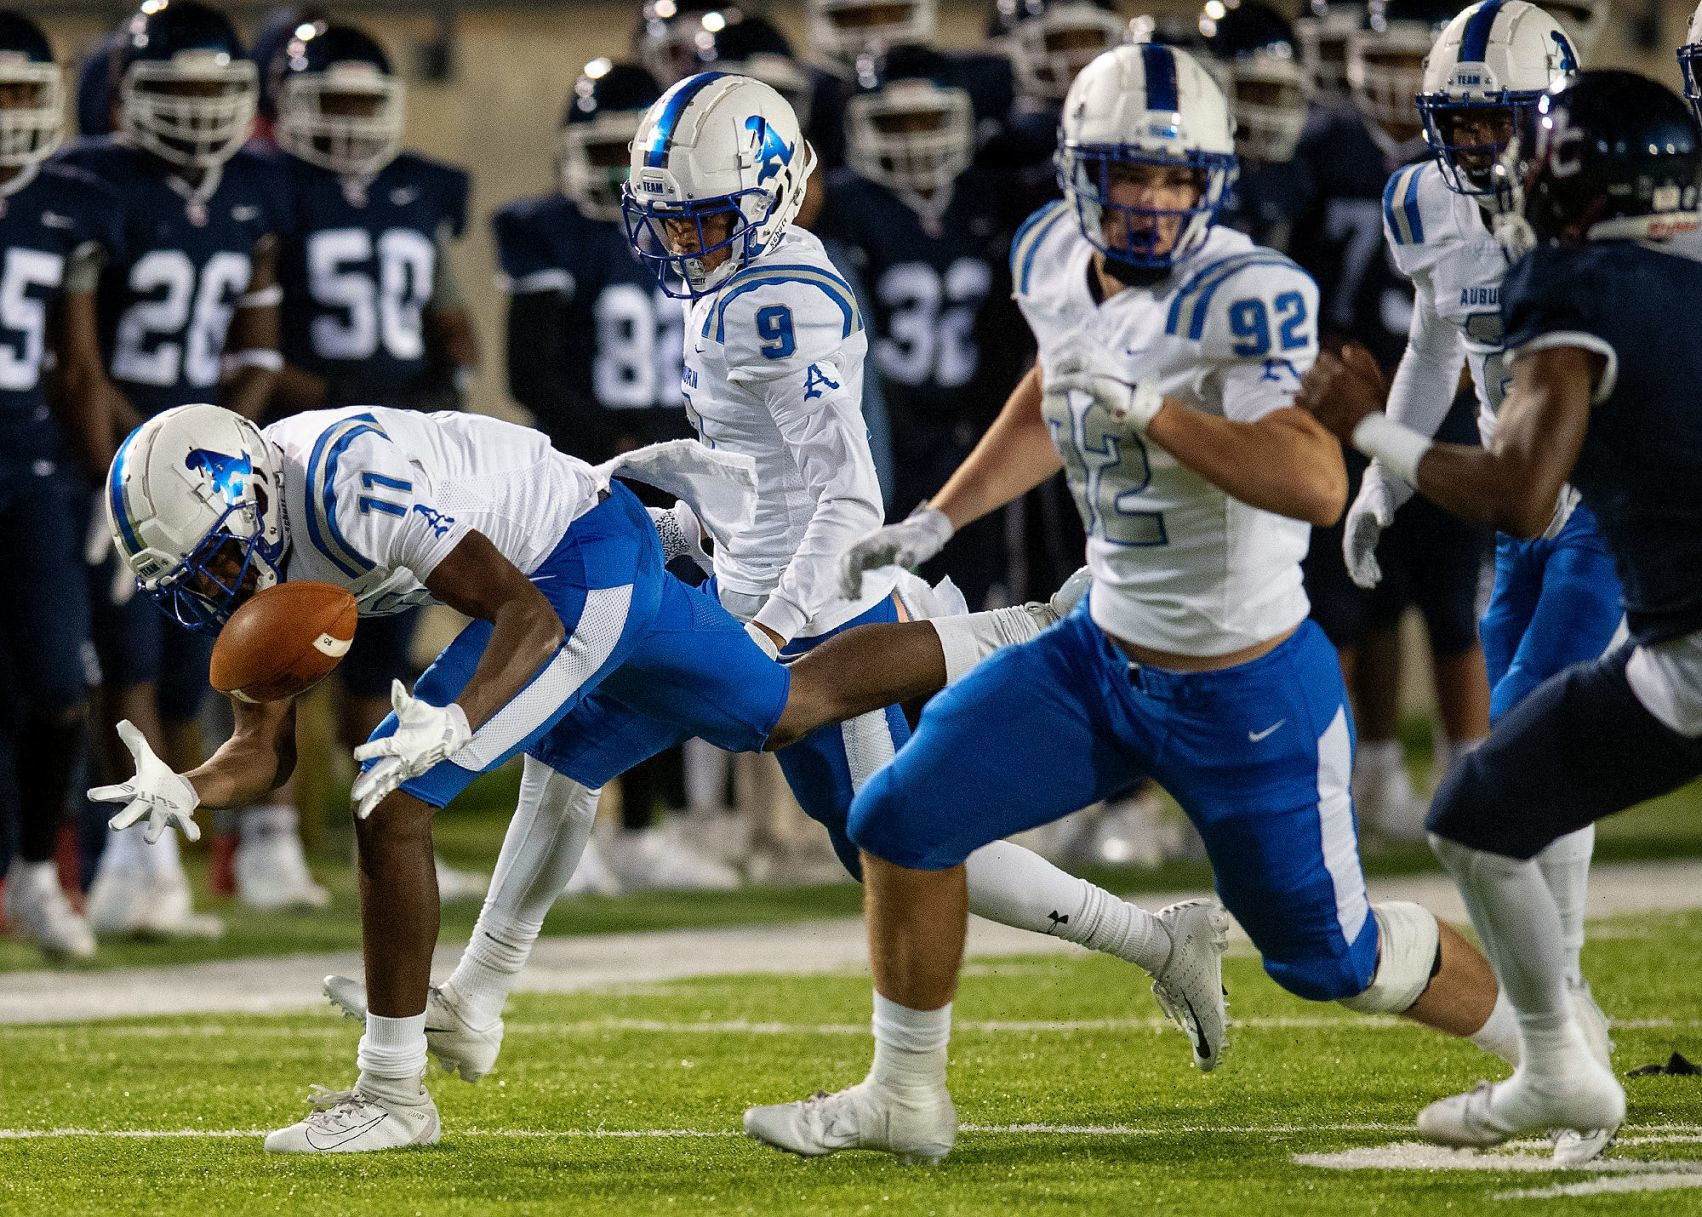 Auburn High Football Makes Schedule Changes Due To COVID High School Oanow com